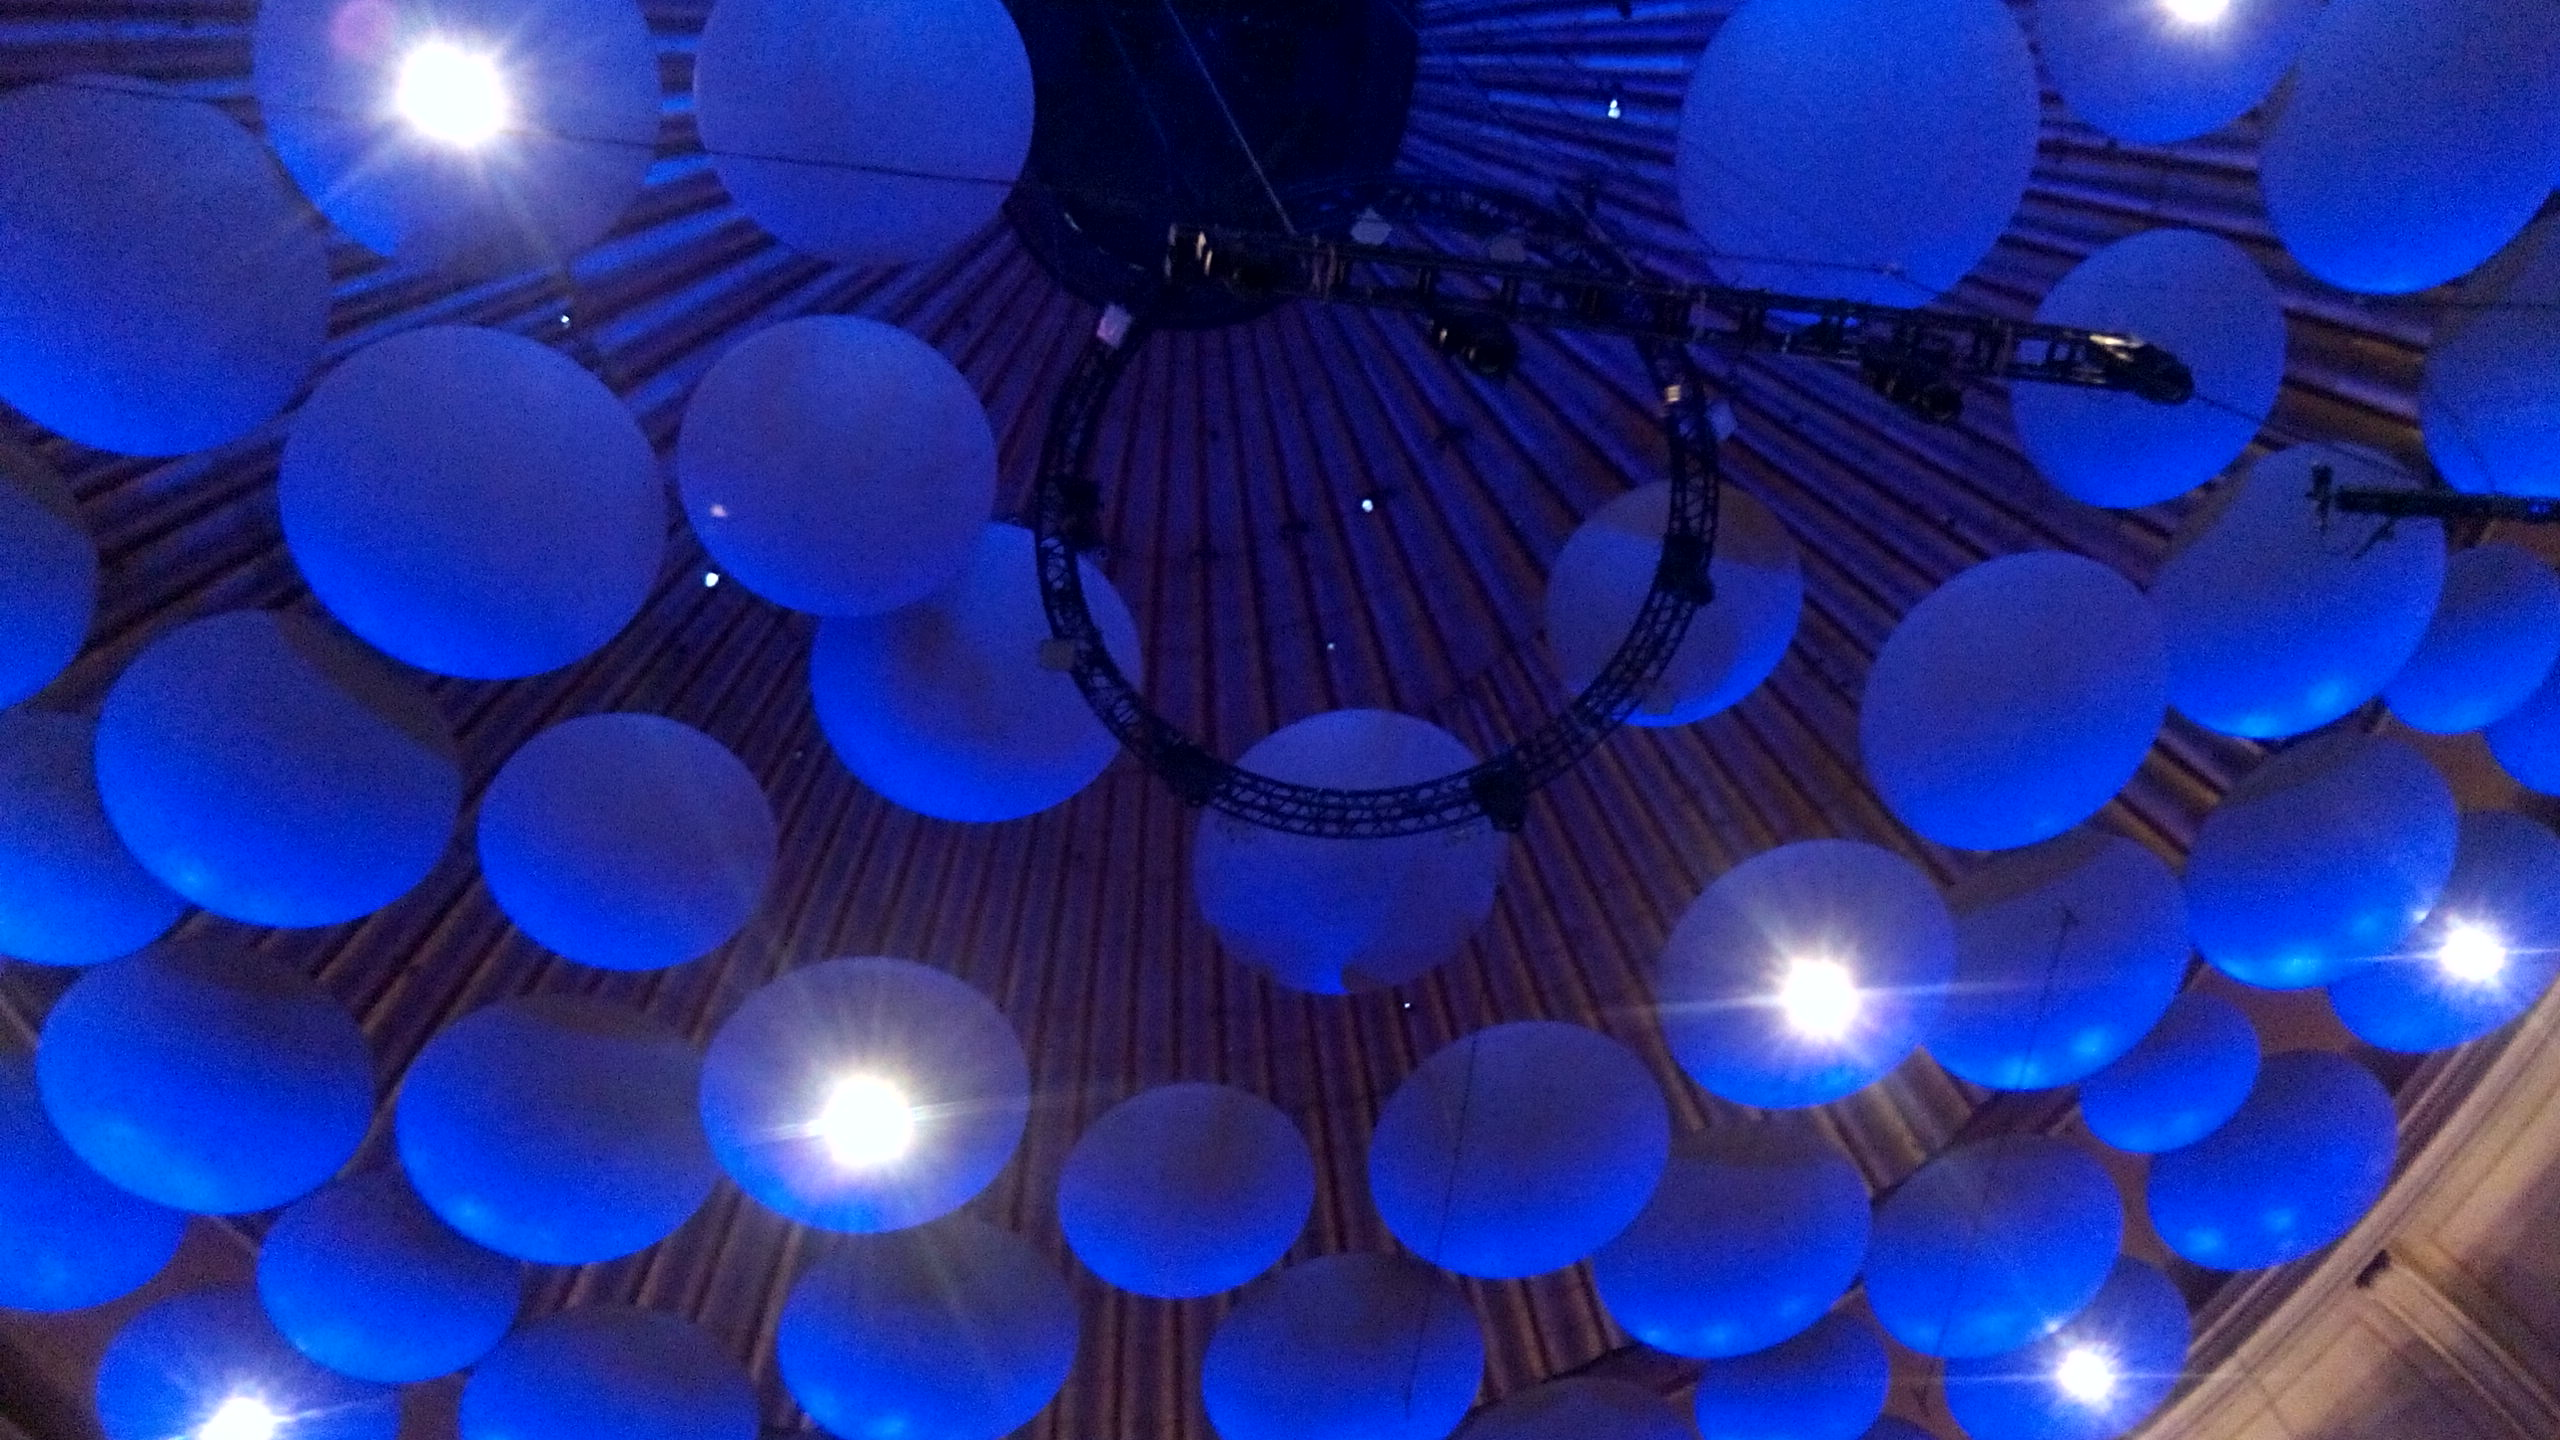 Acoustic diffusers in the Royal Albert Hall